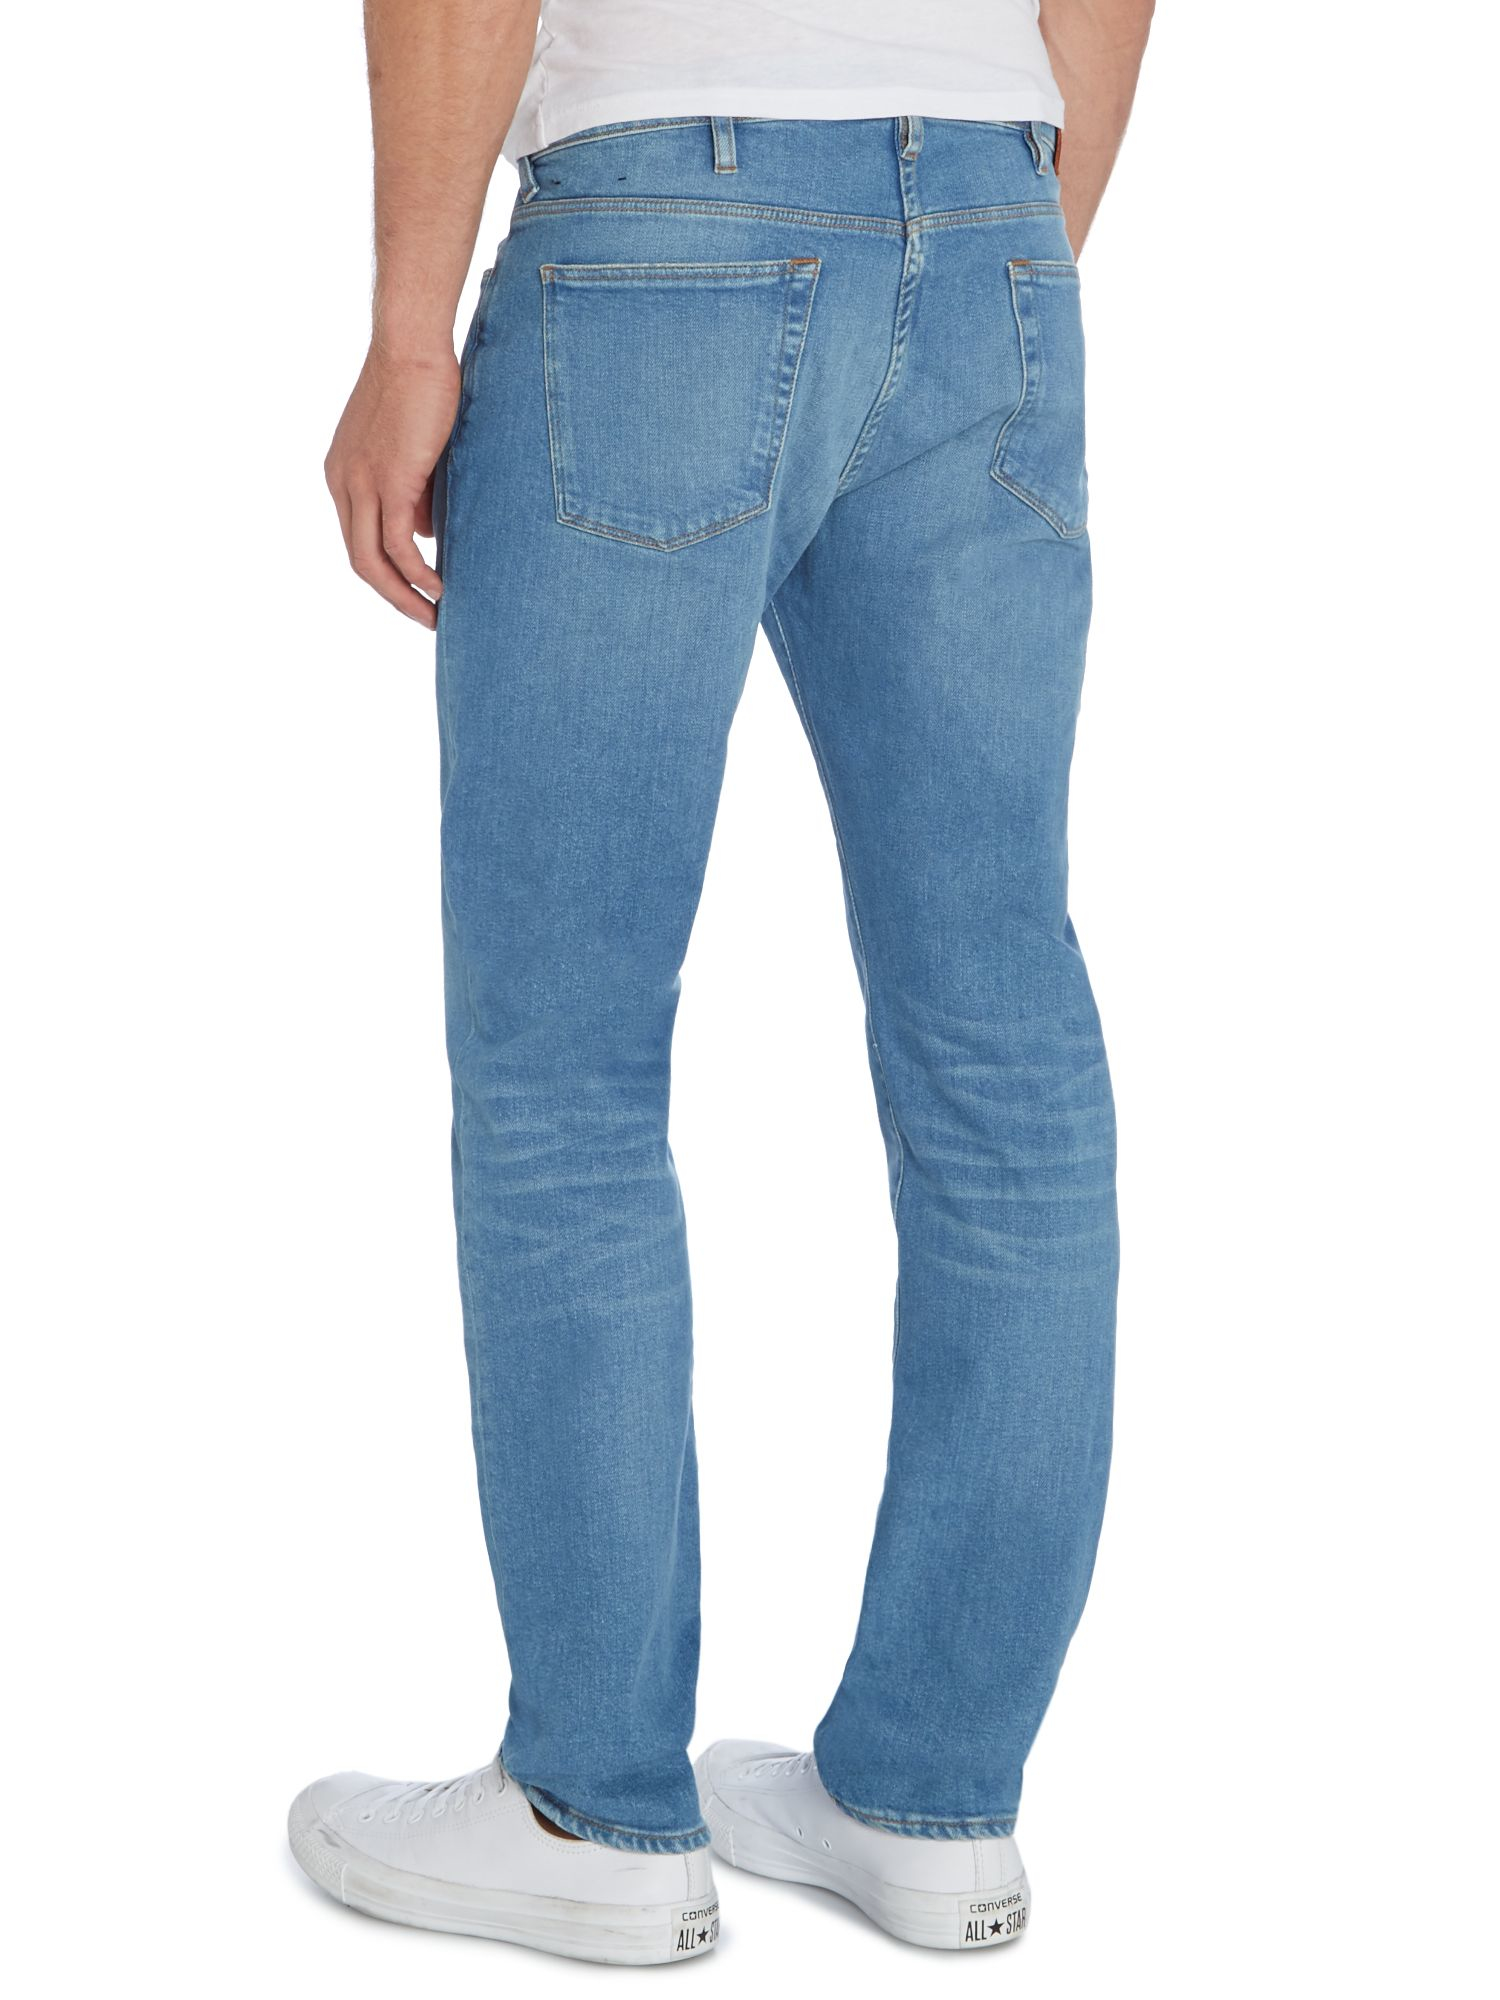 Light wash jeans should be the be the easiest purchase you make this season. These are the best pairs of denim for men.